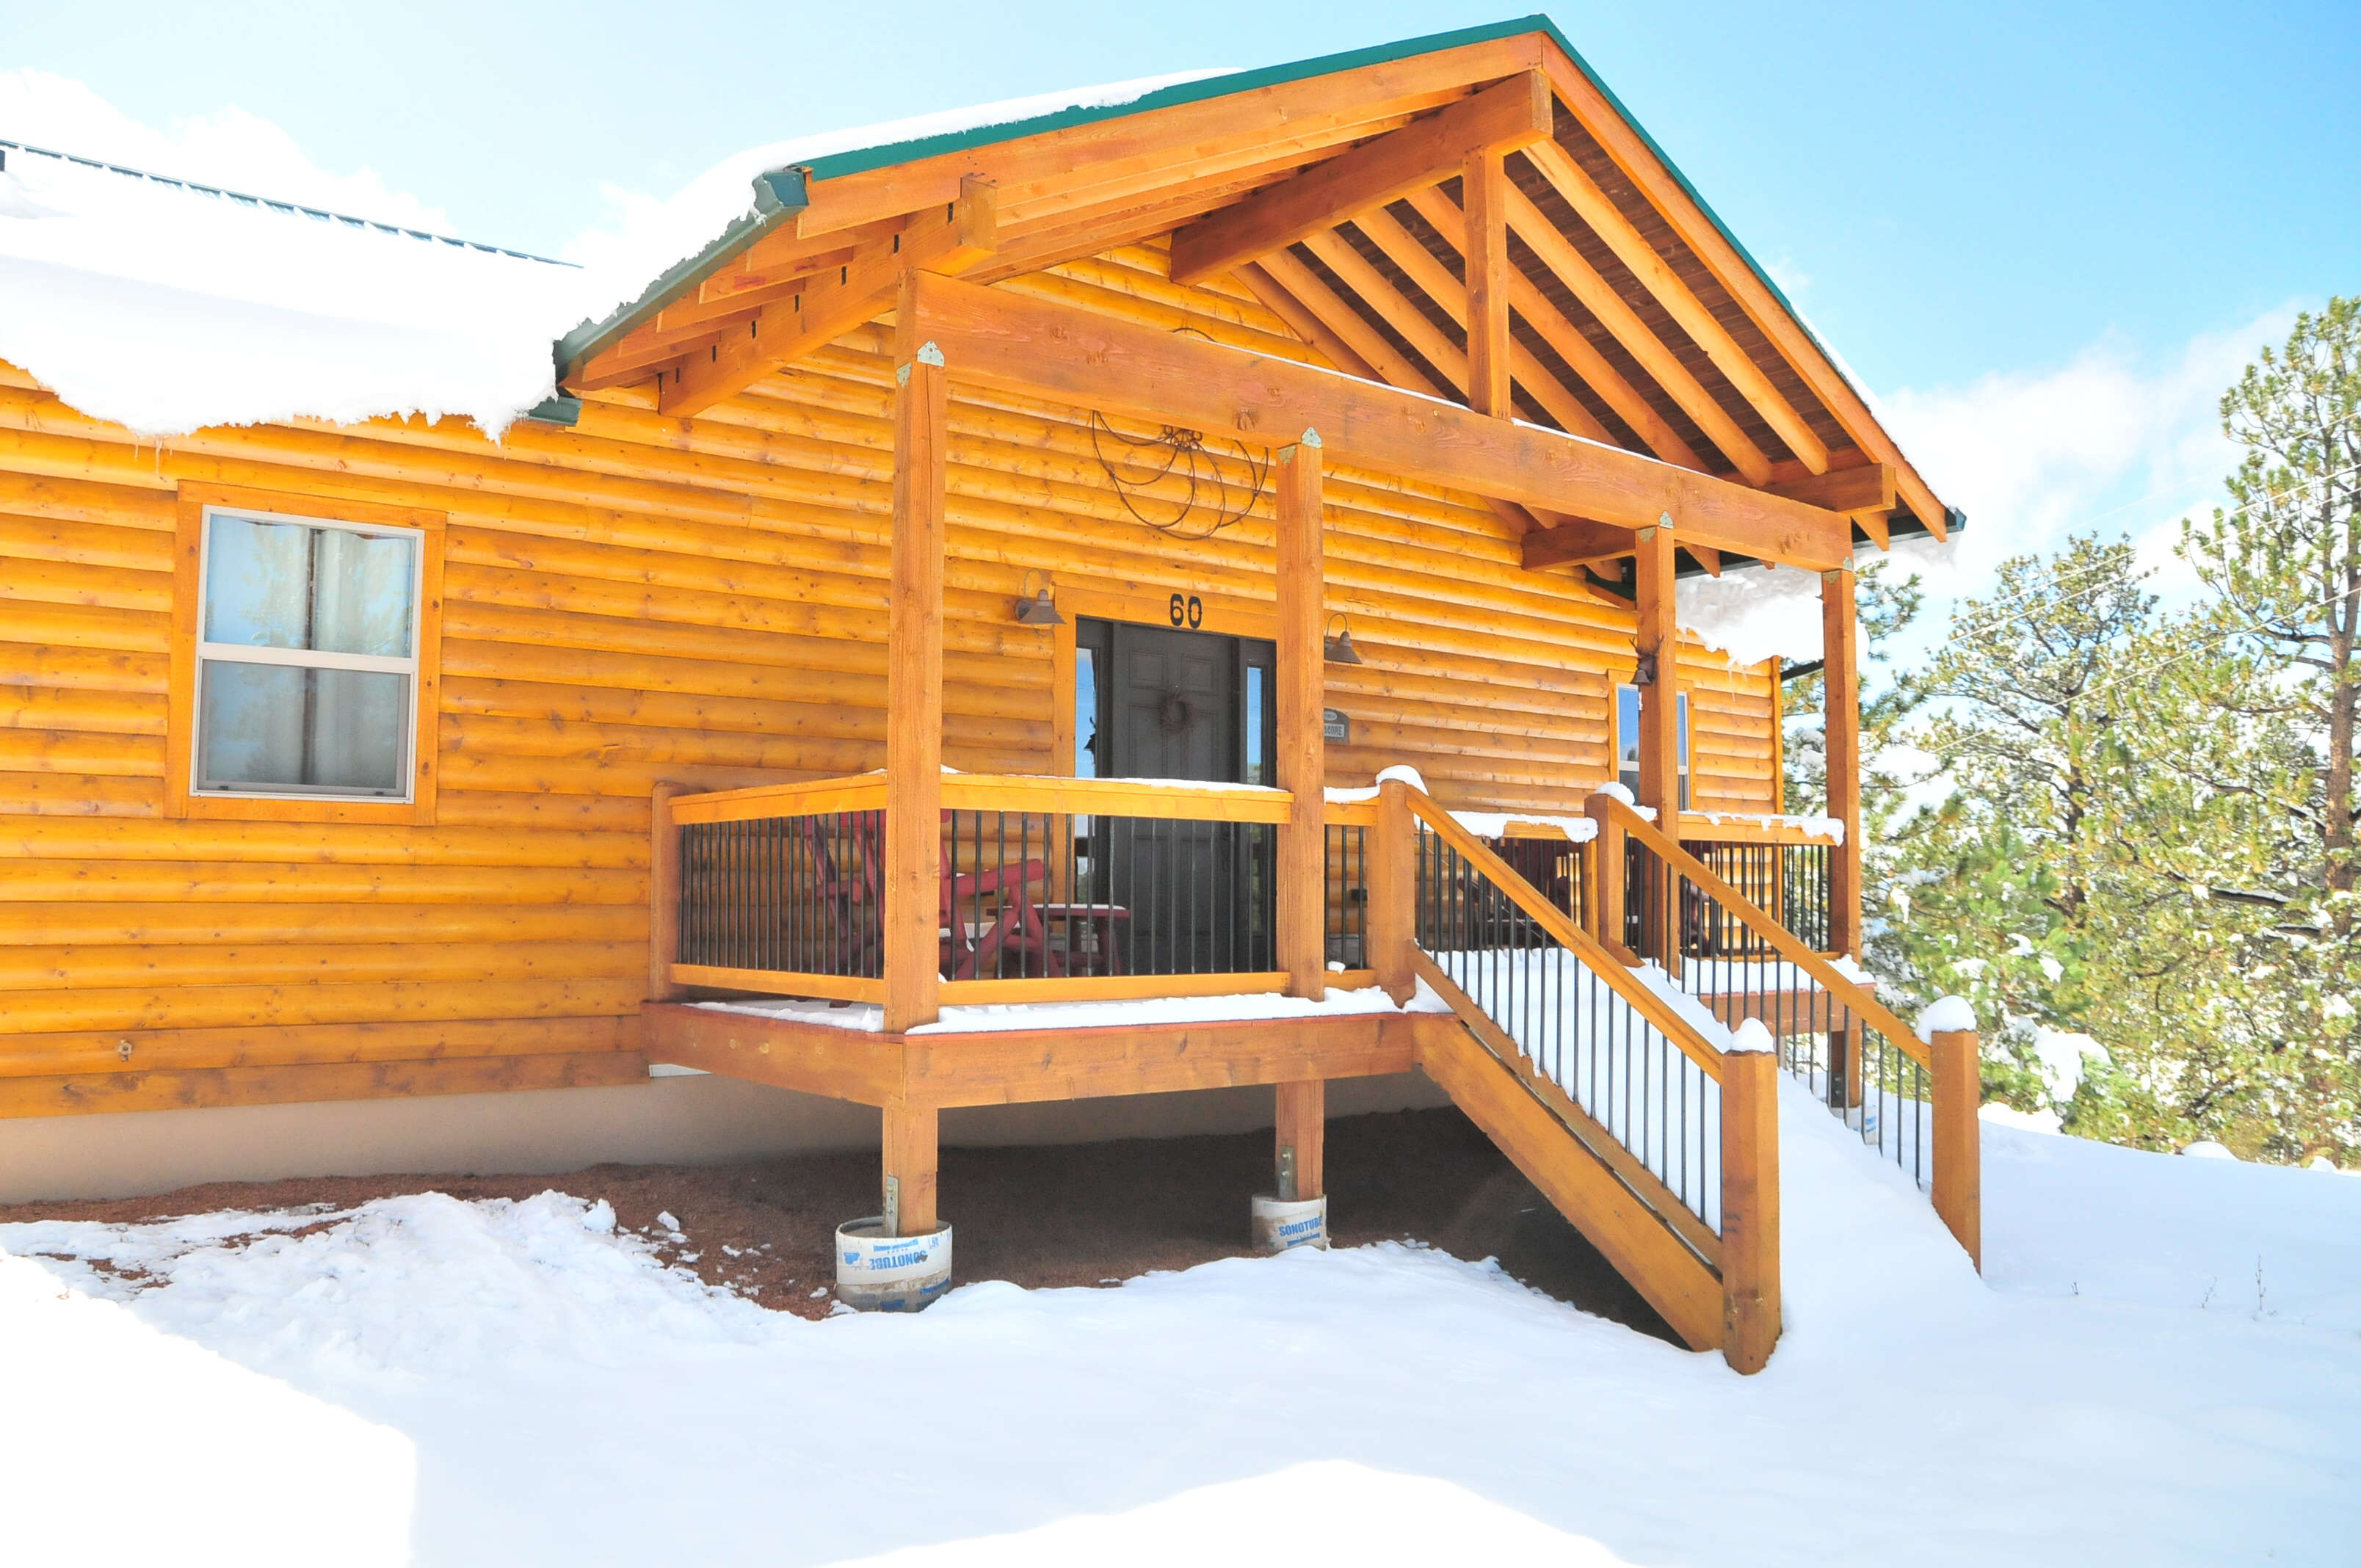 Log Cabin Getaway in the Mountains of Cripple Creek Colorado